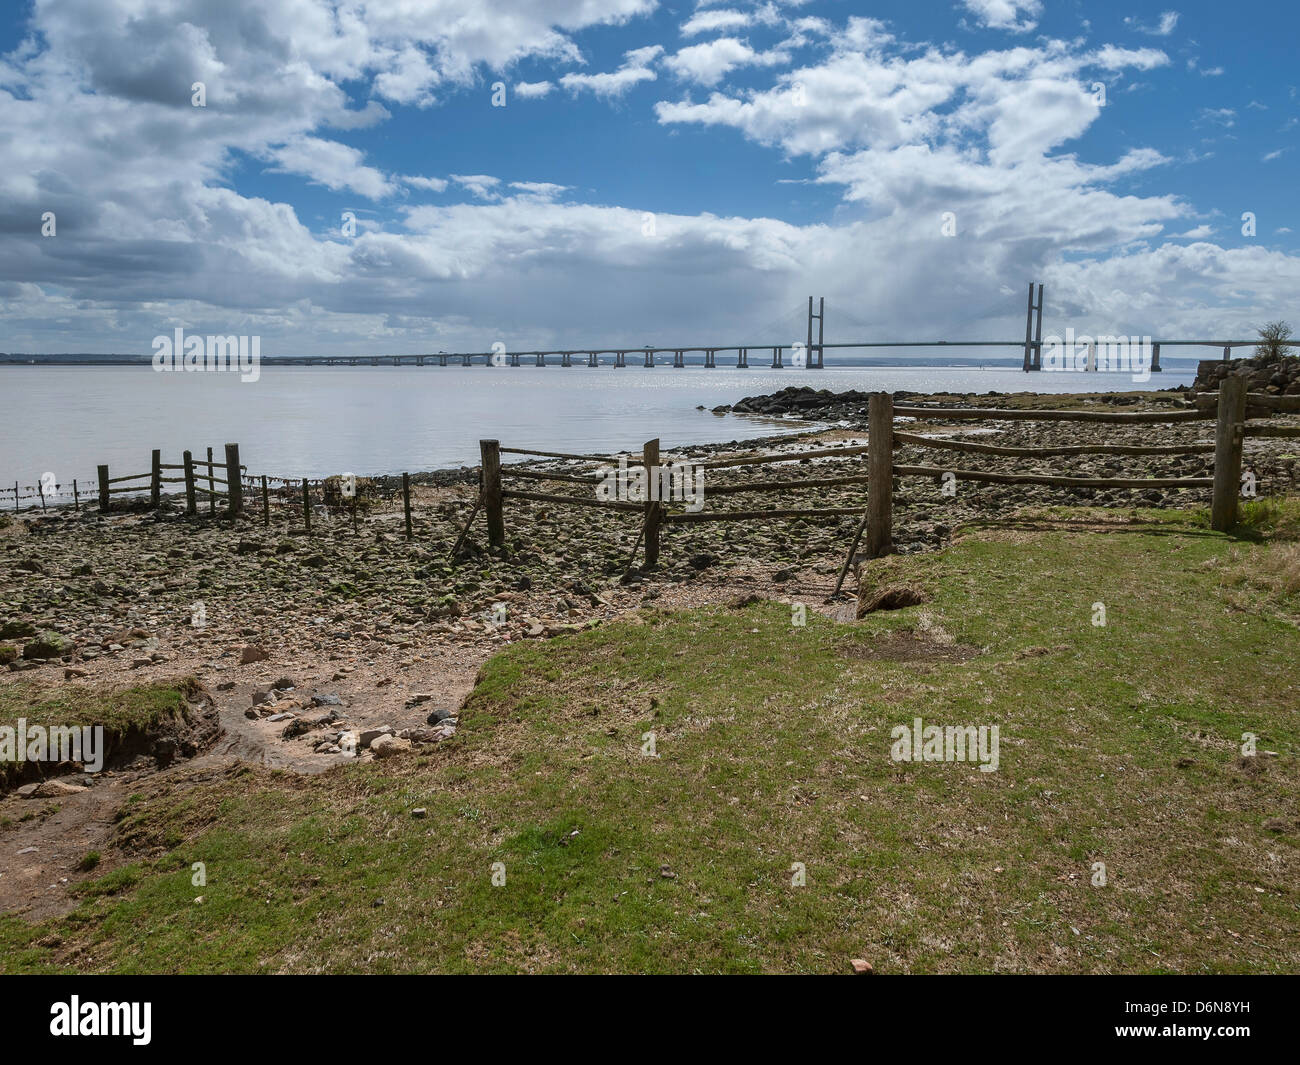 WALES COAST PATH AT BLACK ROCK WITH SECOND SEVERN CROSSING IN BACK GROUND. Monmouthshire Waes UK - Stock Image